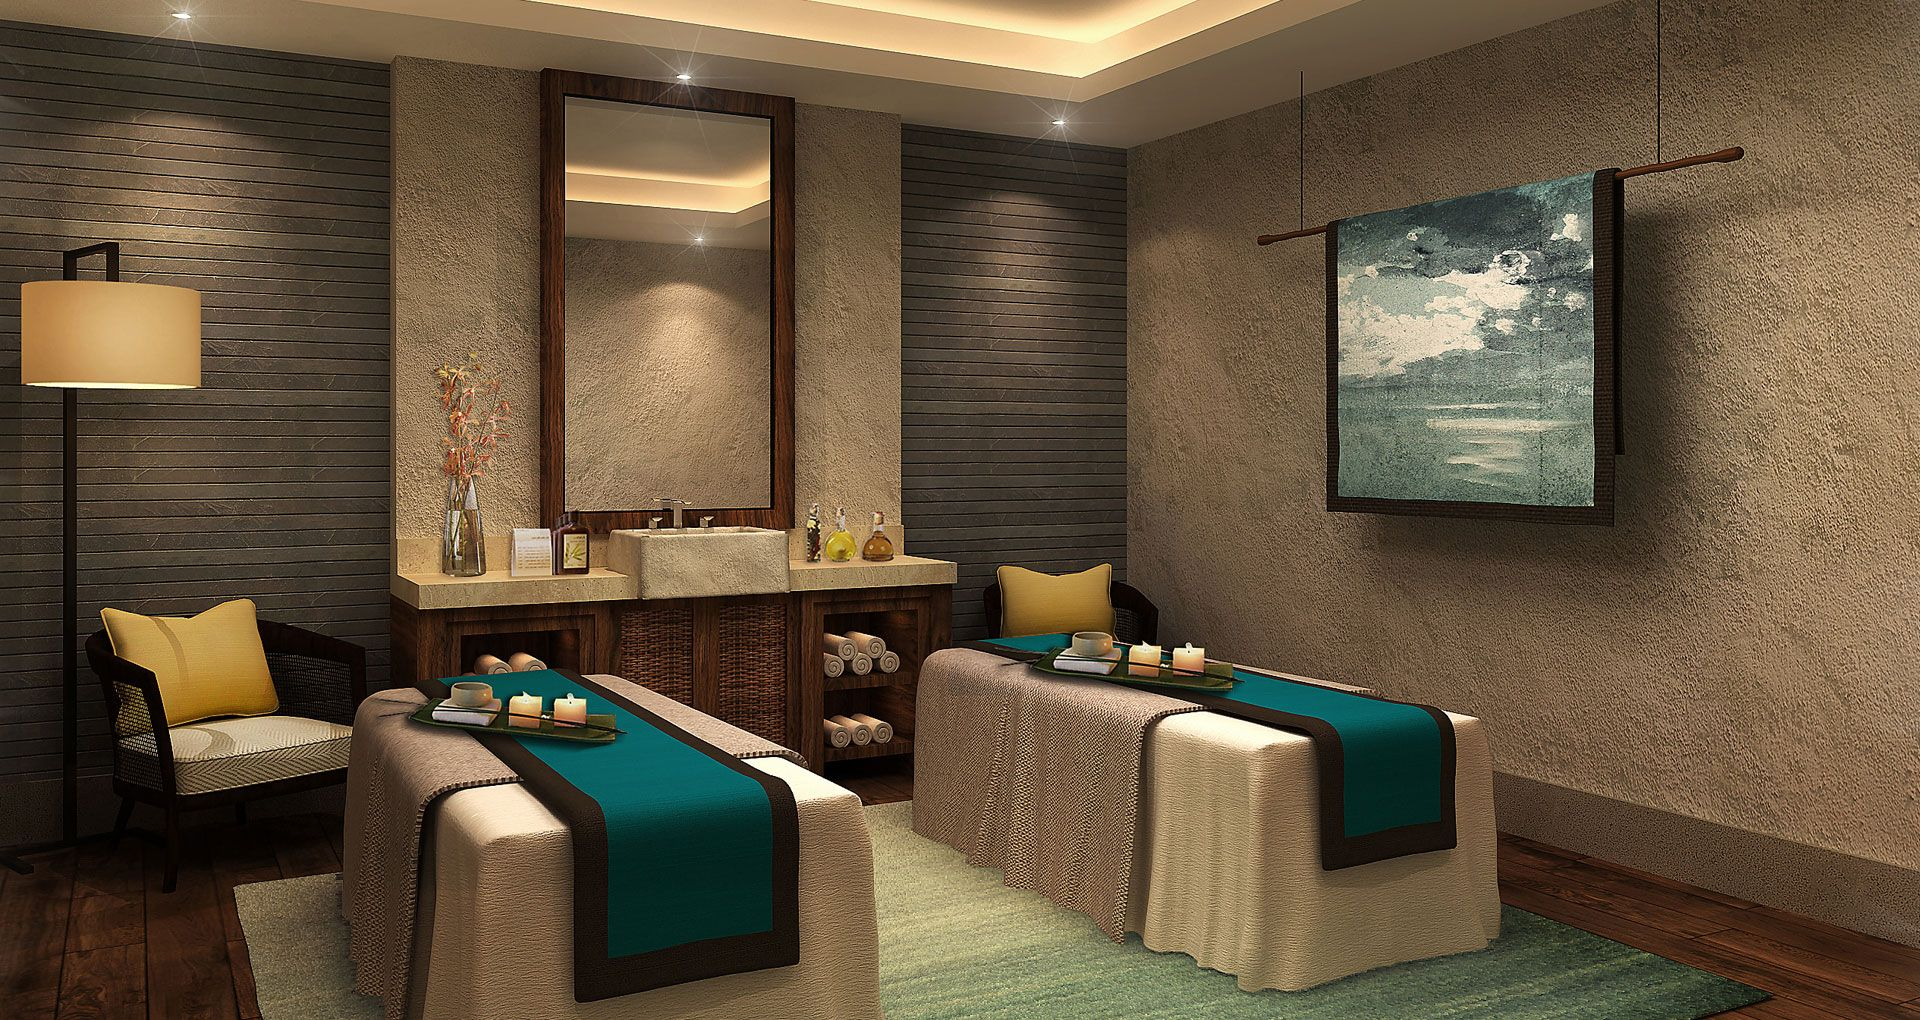 zhangzhou half moon hill hot spring resort spa interior